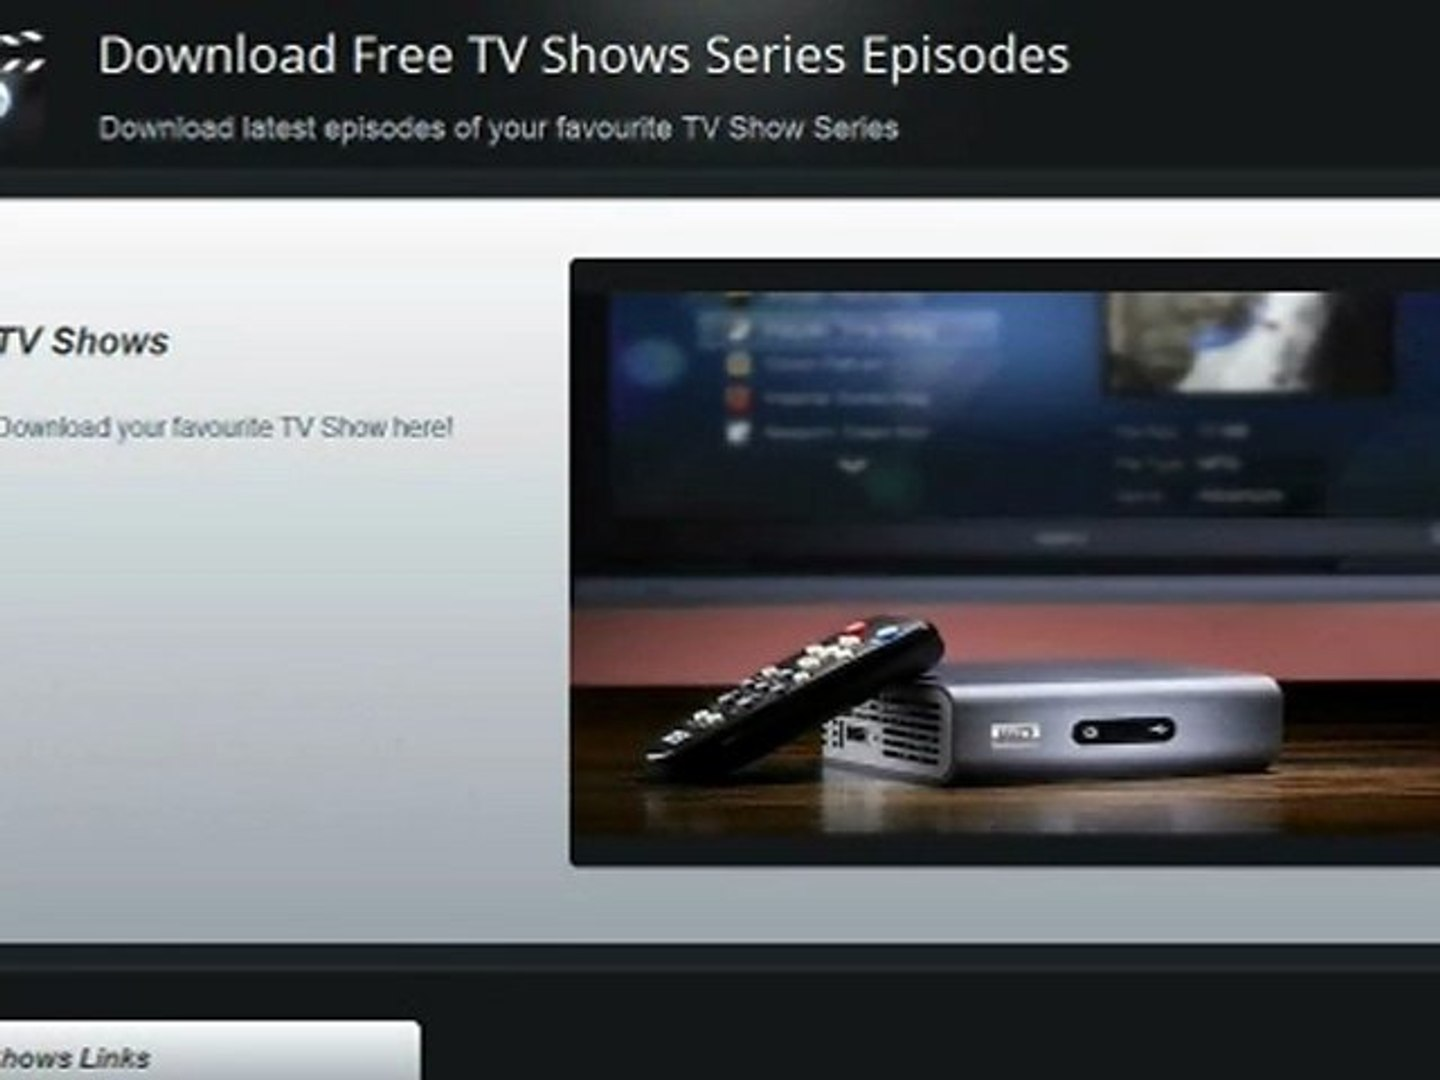 Download TV Shows for Free - Free TV Shows Series - Episodes Download